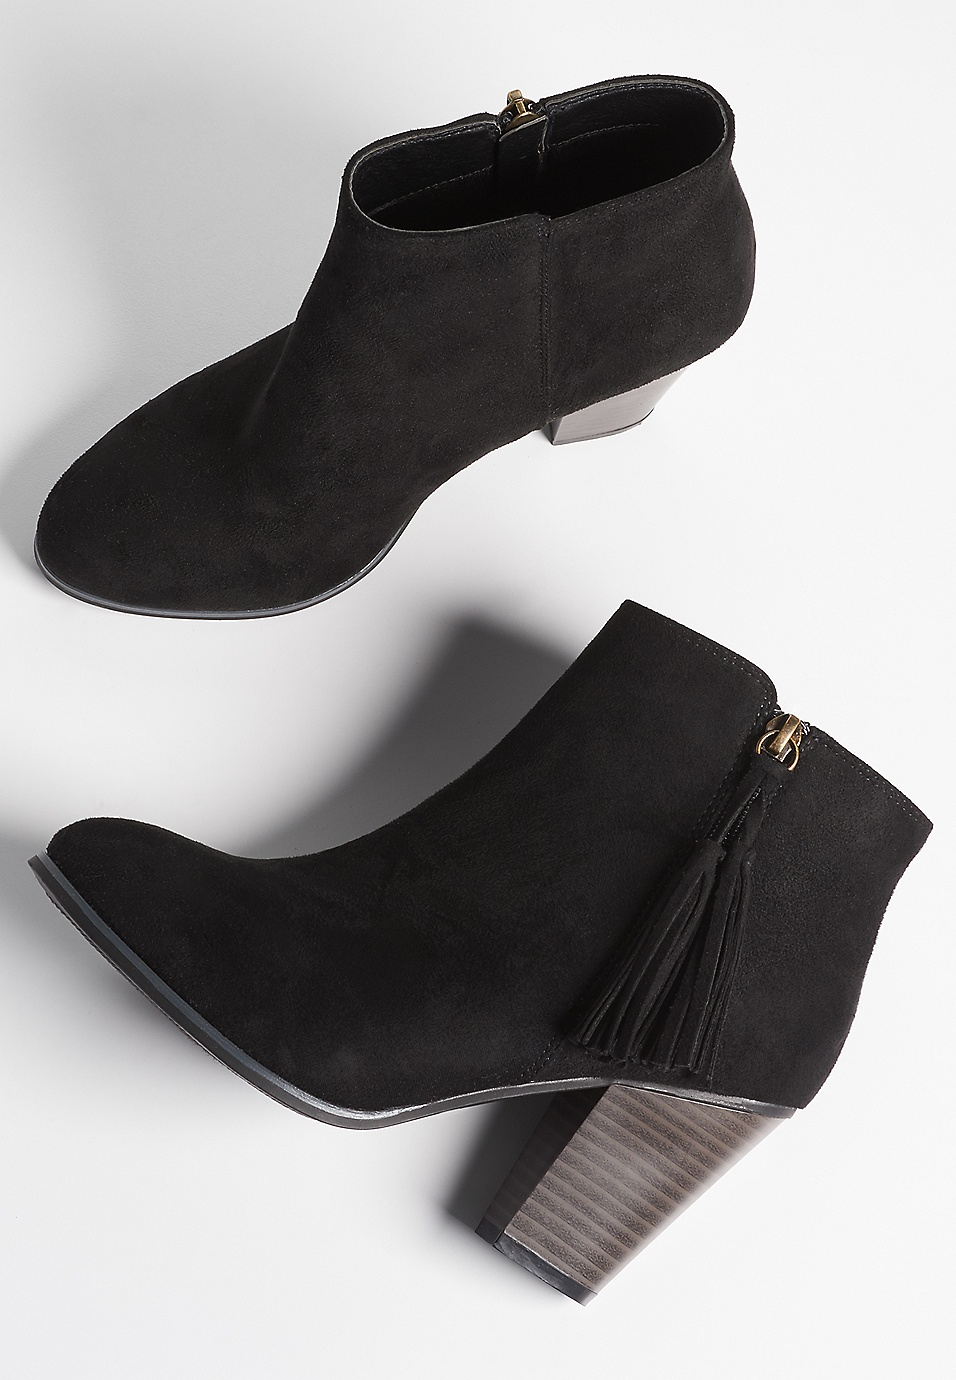 Image result for carmen tassel side zip bootie